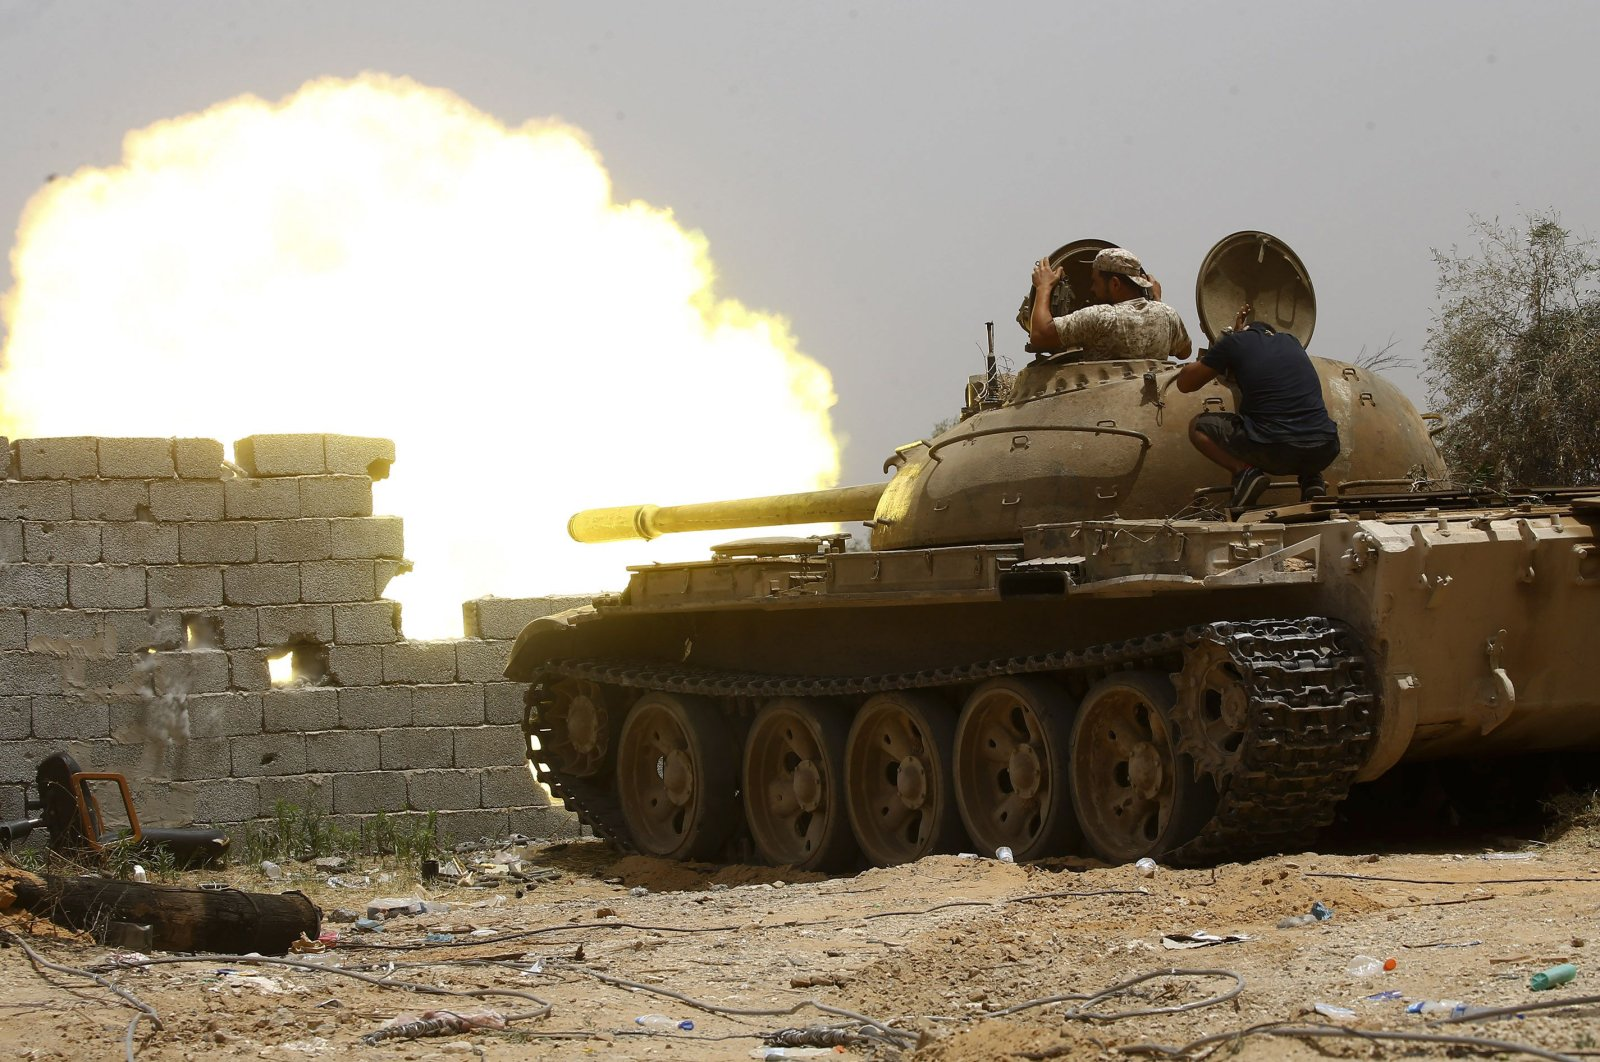 Forces loyal to the UN-recognised Government of National Accord (GNA) open tank fire from their position in the al-Sawani area south of the Libyan capital Tripoli during clashes with Haftar forces, June 13, 2019. (AFP)